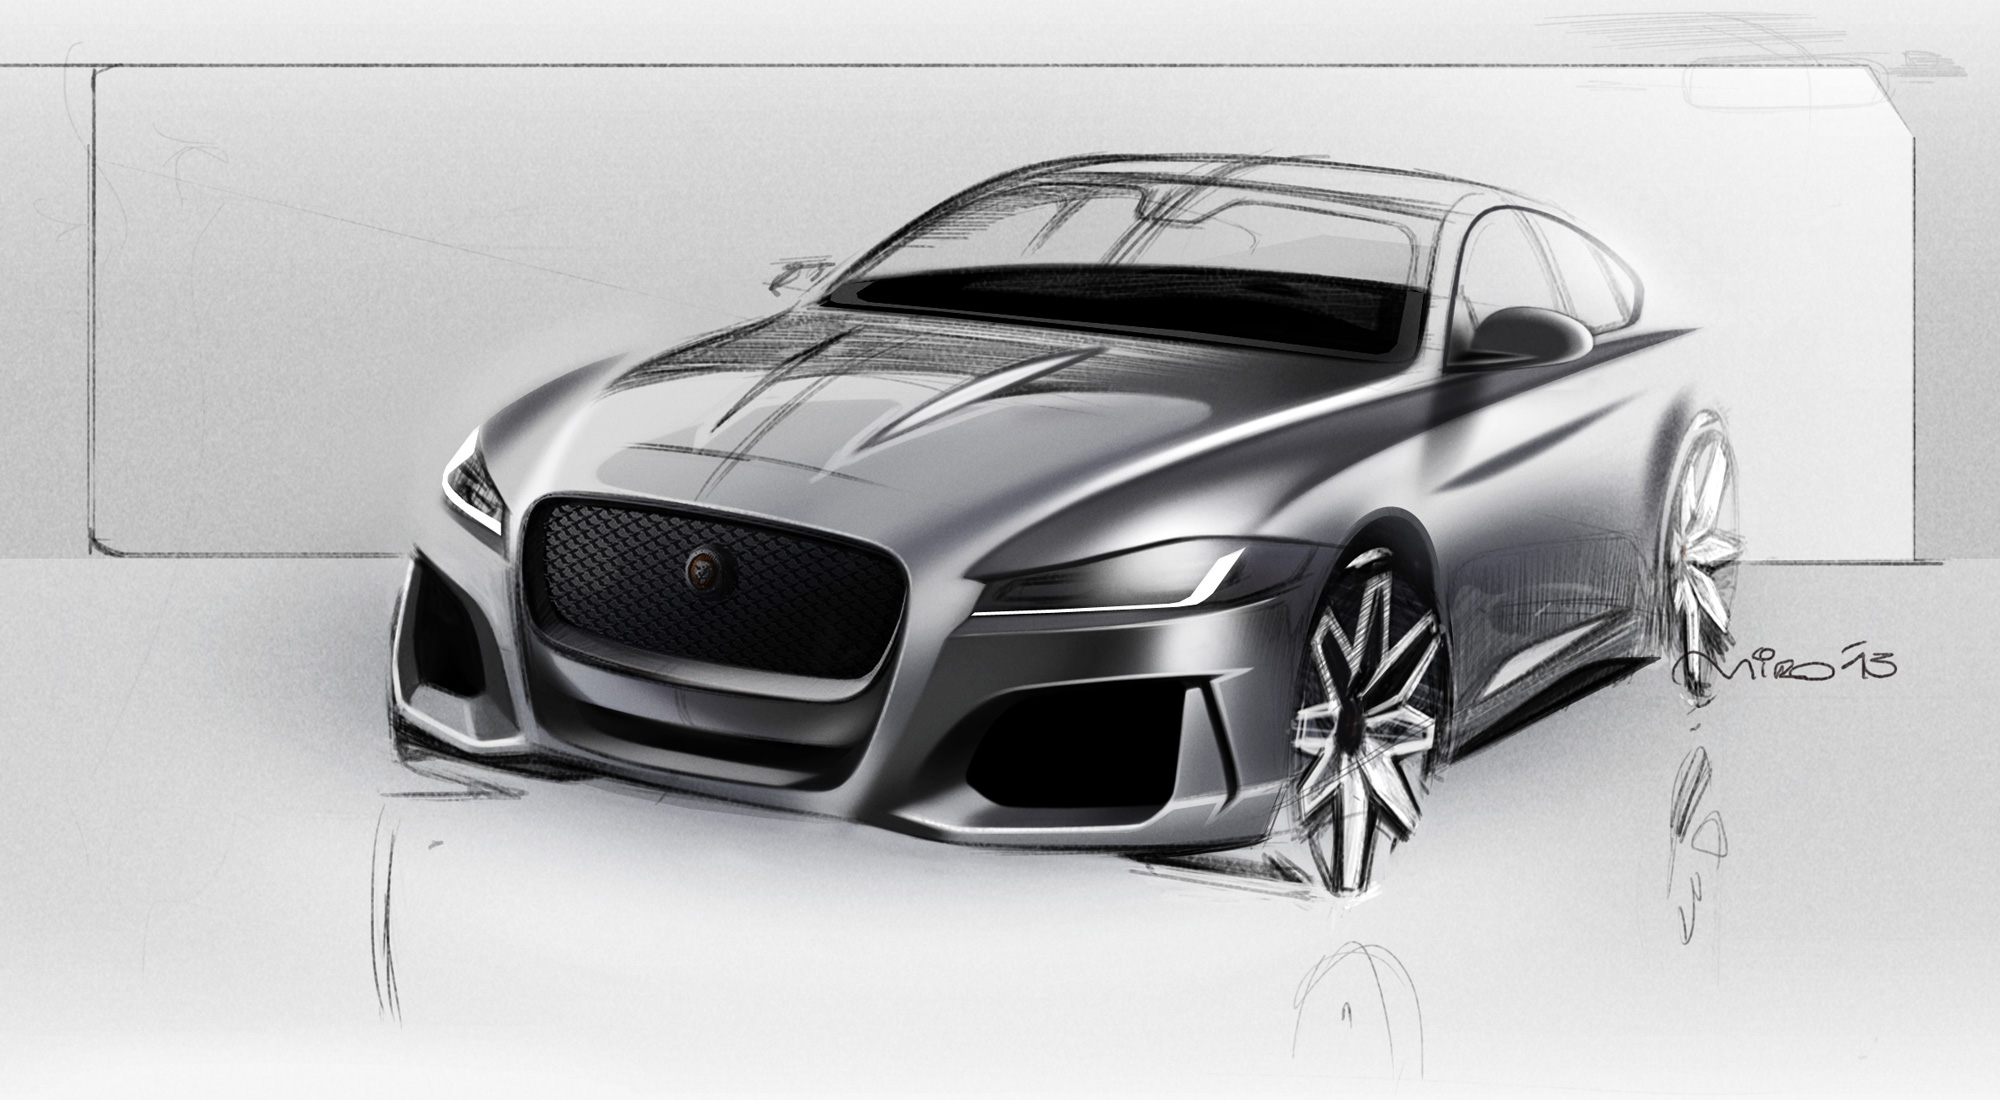 2016 Jaguar XF Exterior Design Sketch